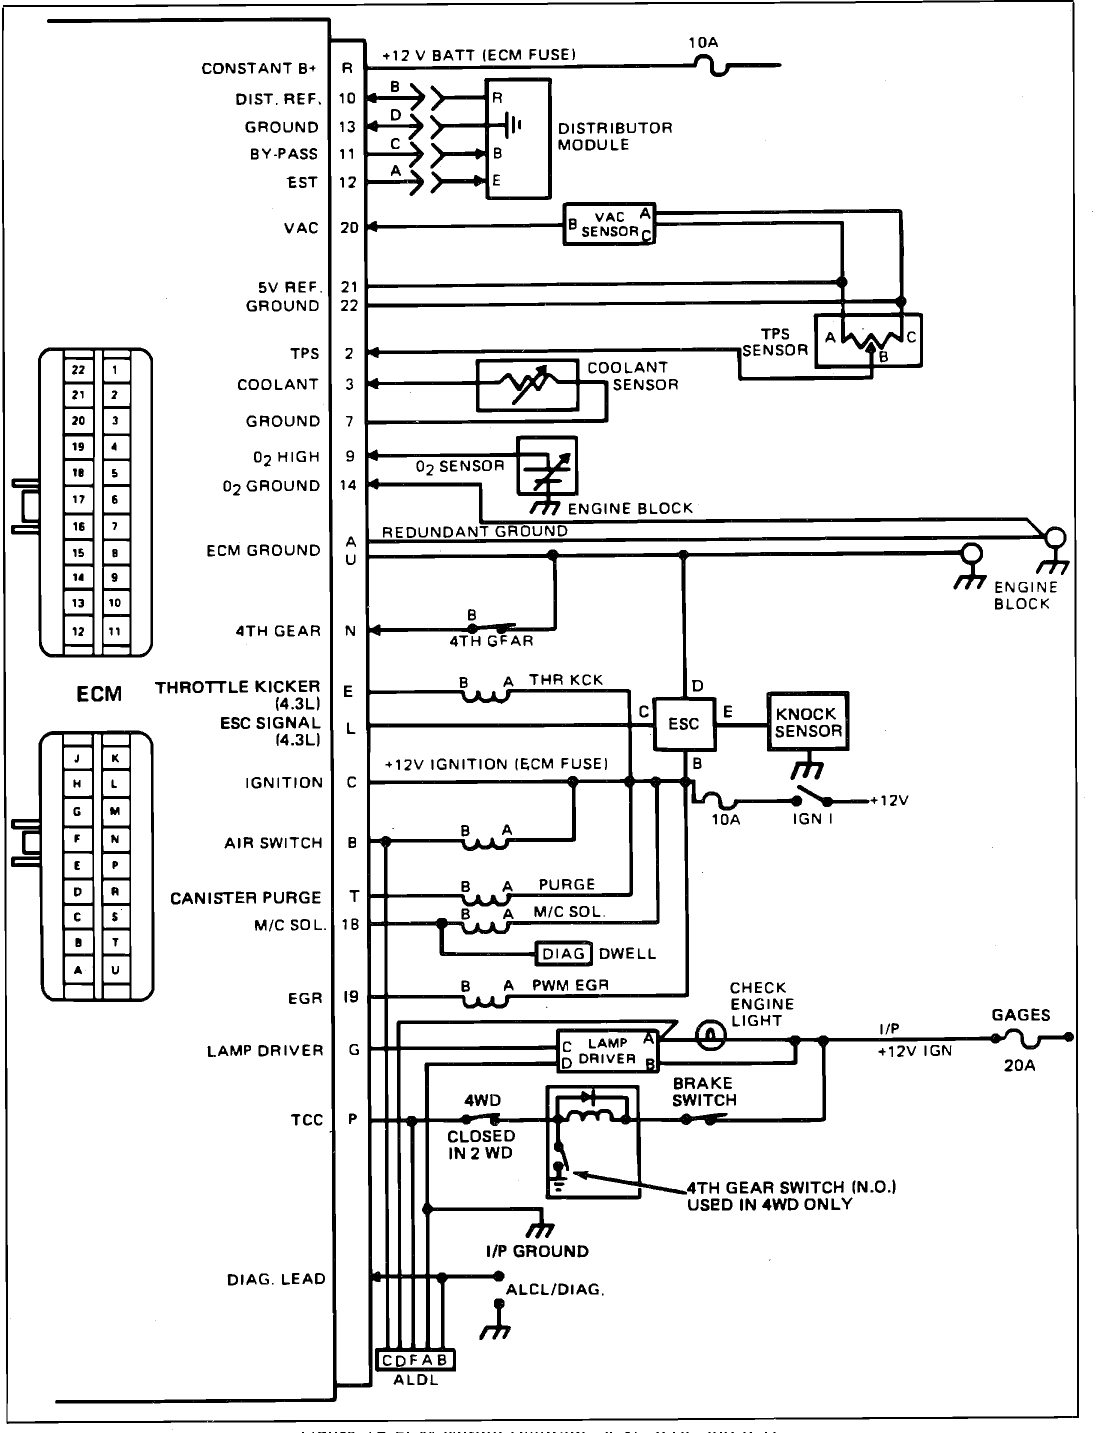 hight resolution of 95 astro fuse box wiring diagram 1995 chevy astro fuse diagram 95 astro wiring diagram blog